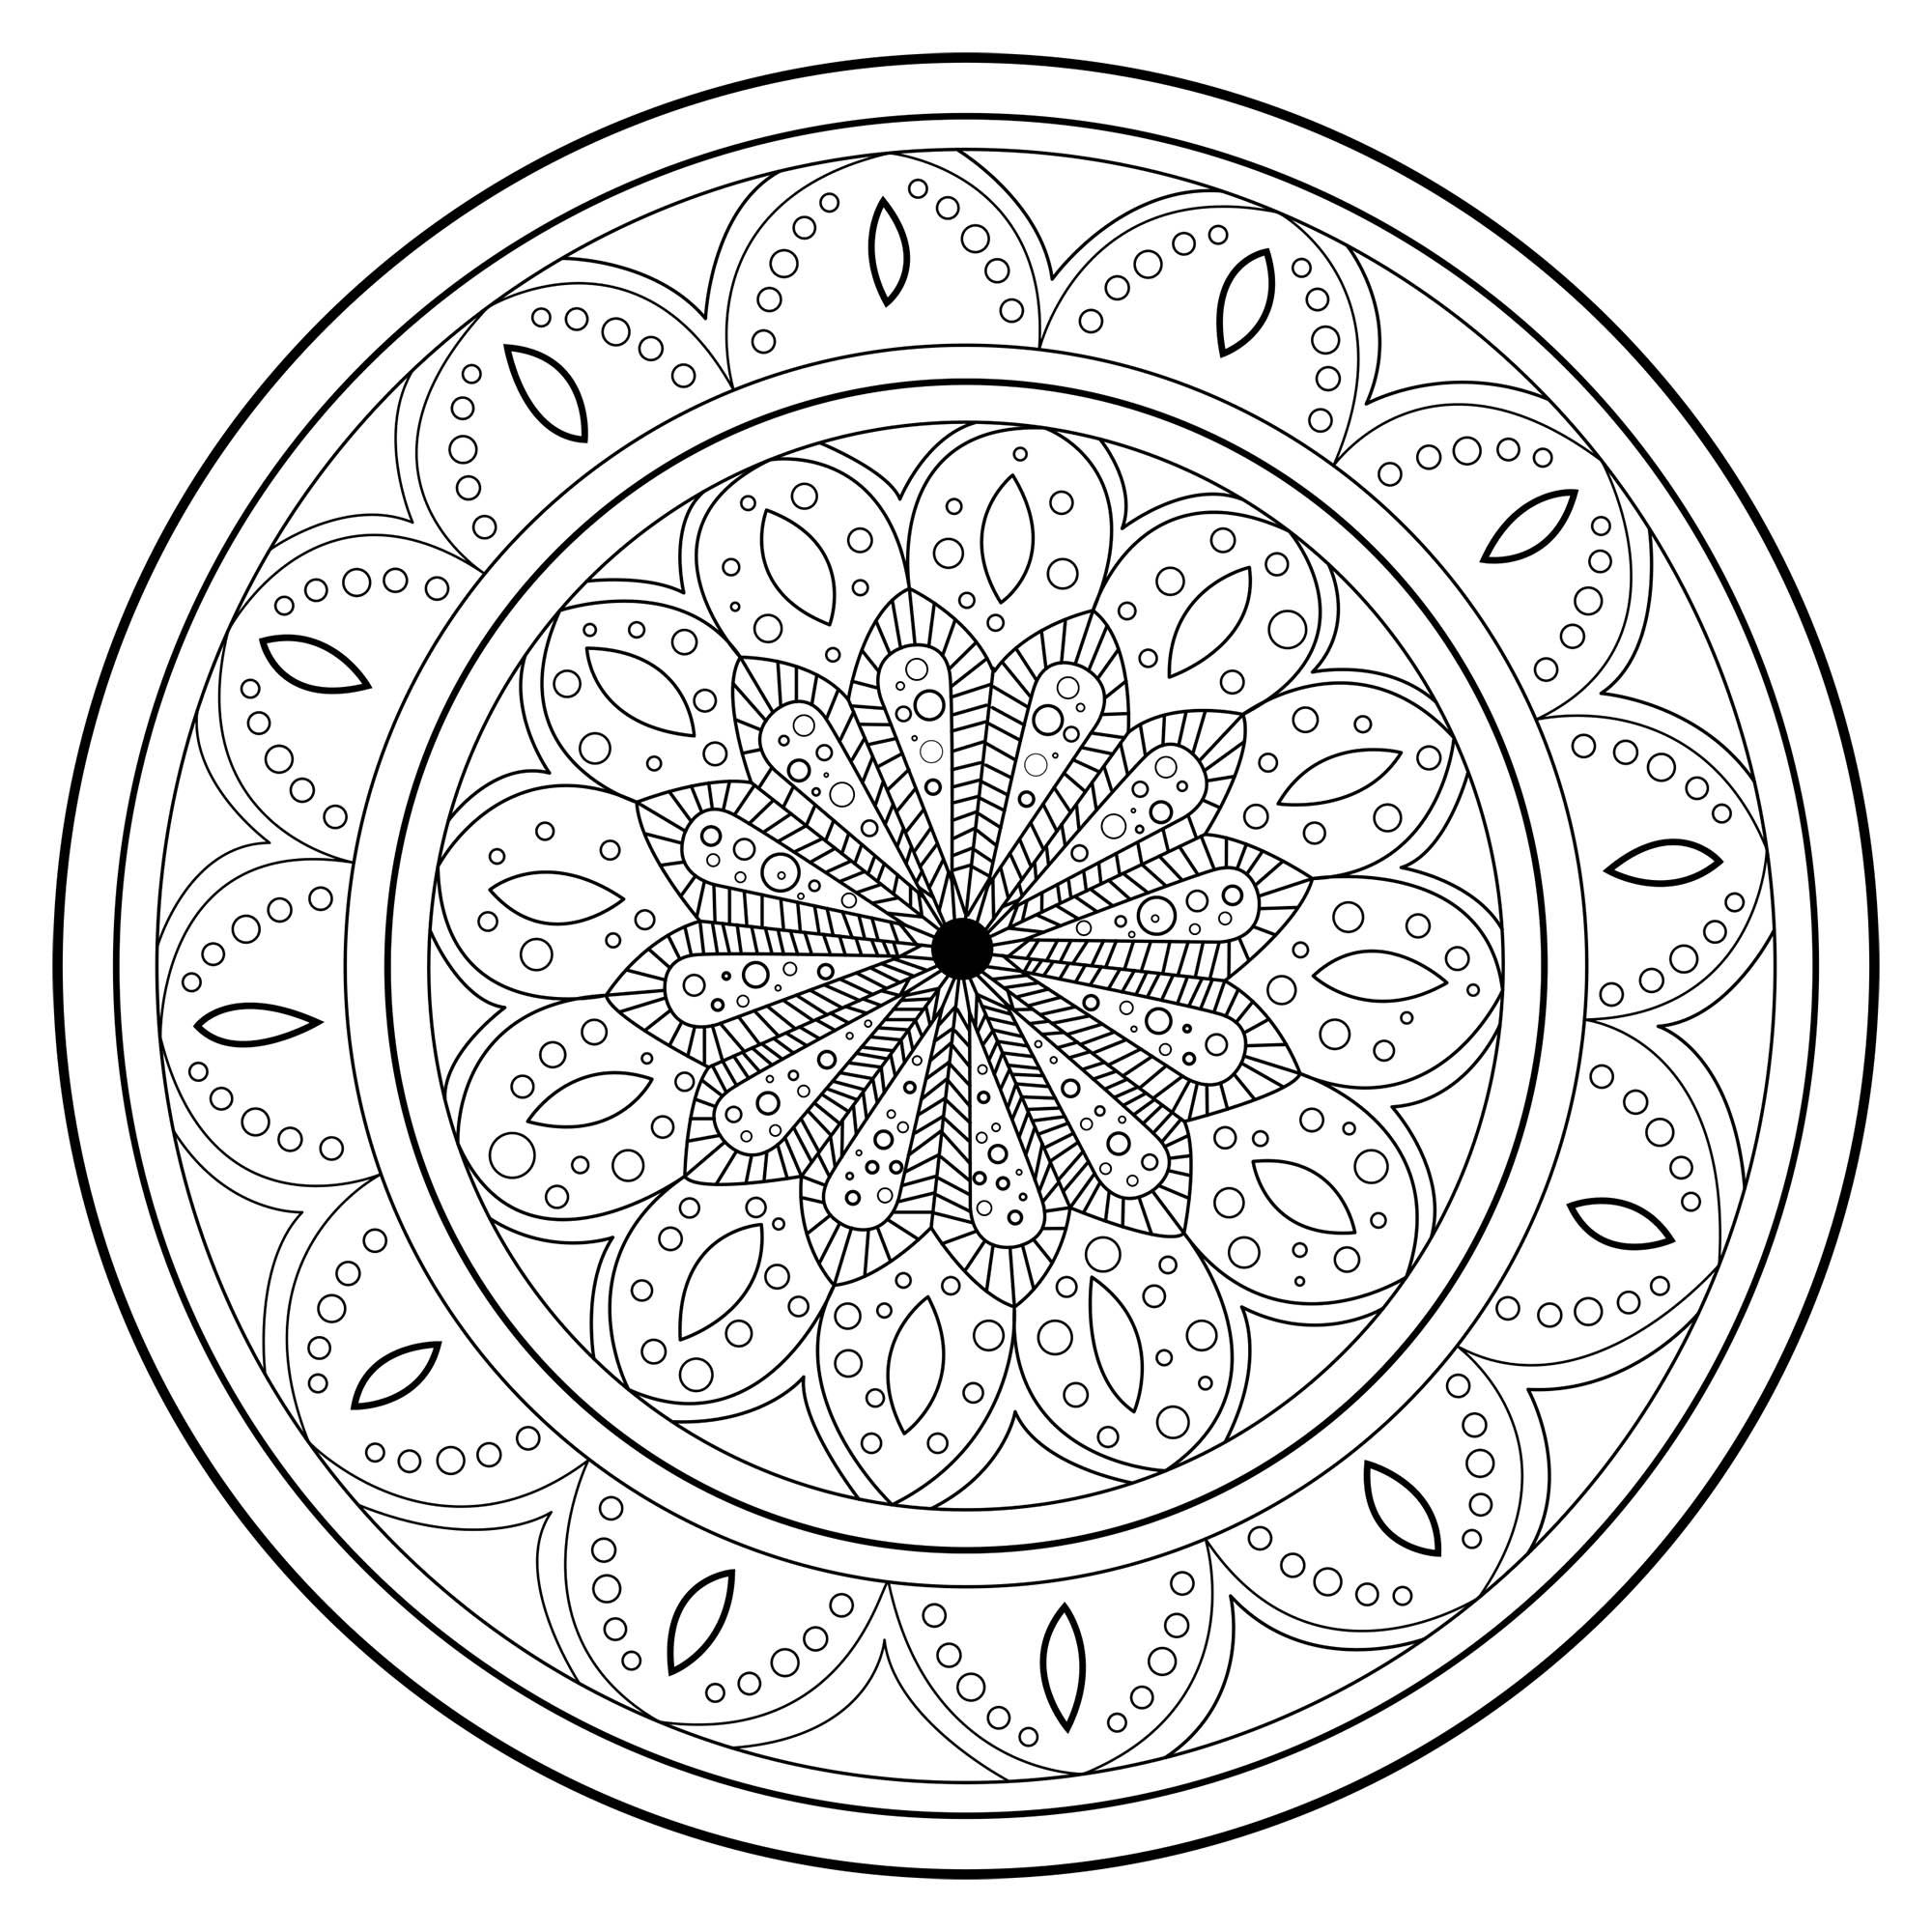 Here Are Difficult Mandalas Coloring Pages For Adults To Print For Free Mandala Is A Sanskrit Word Whic Mandala Coloring Pages Mandala Coloring Coloring Pages